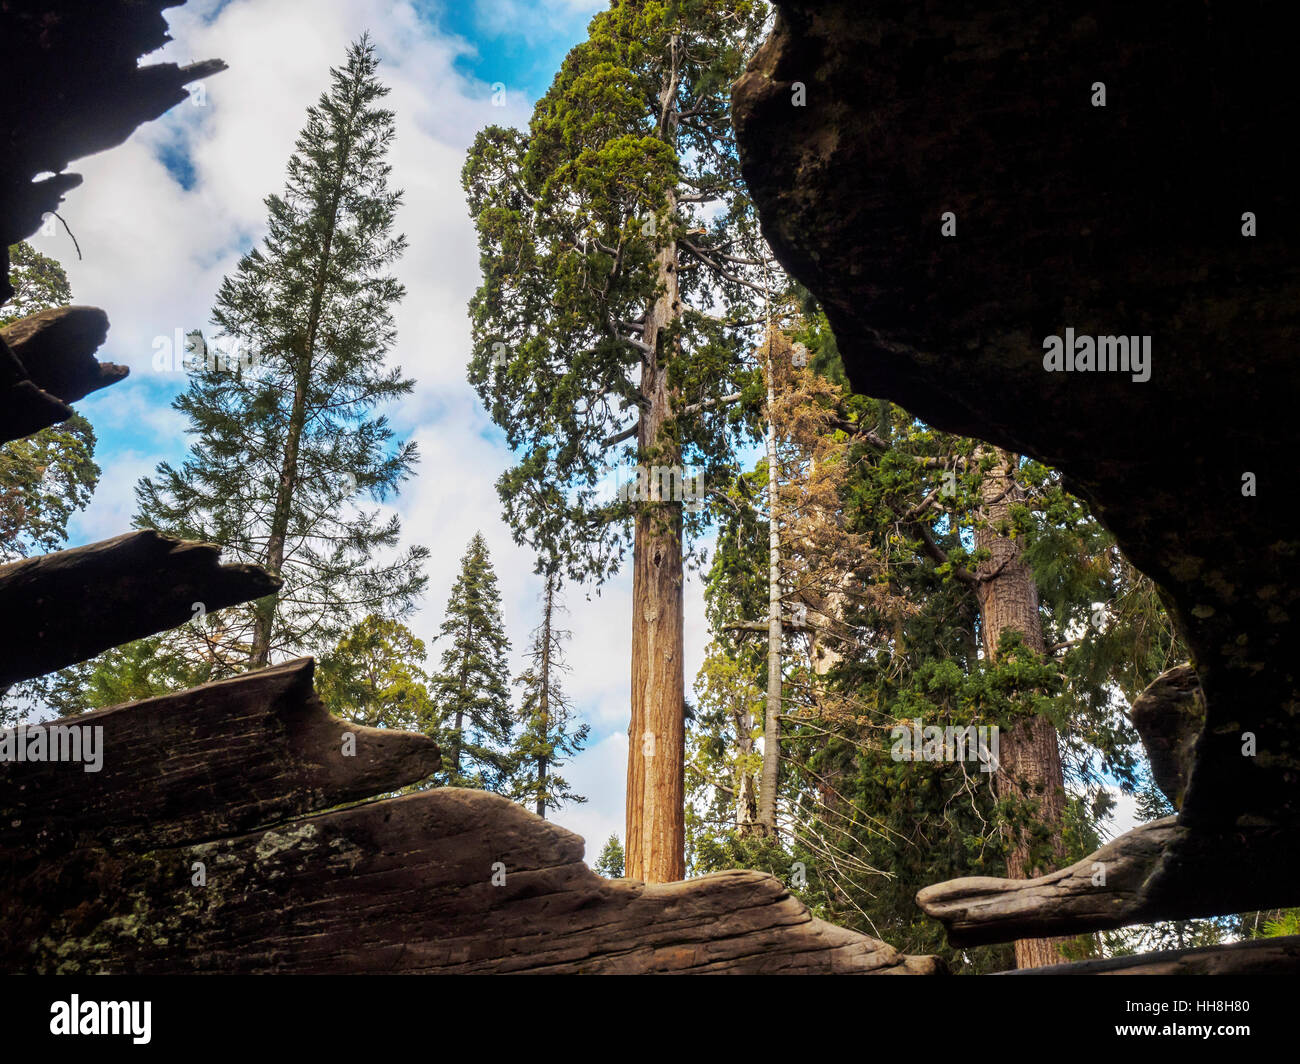 View from inside a fallen hollow giant redwood tree, Grant Grove, Sequoia National Forest. Visitors can walk though the tree. Stock Photo